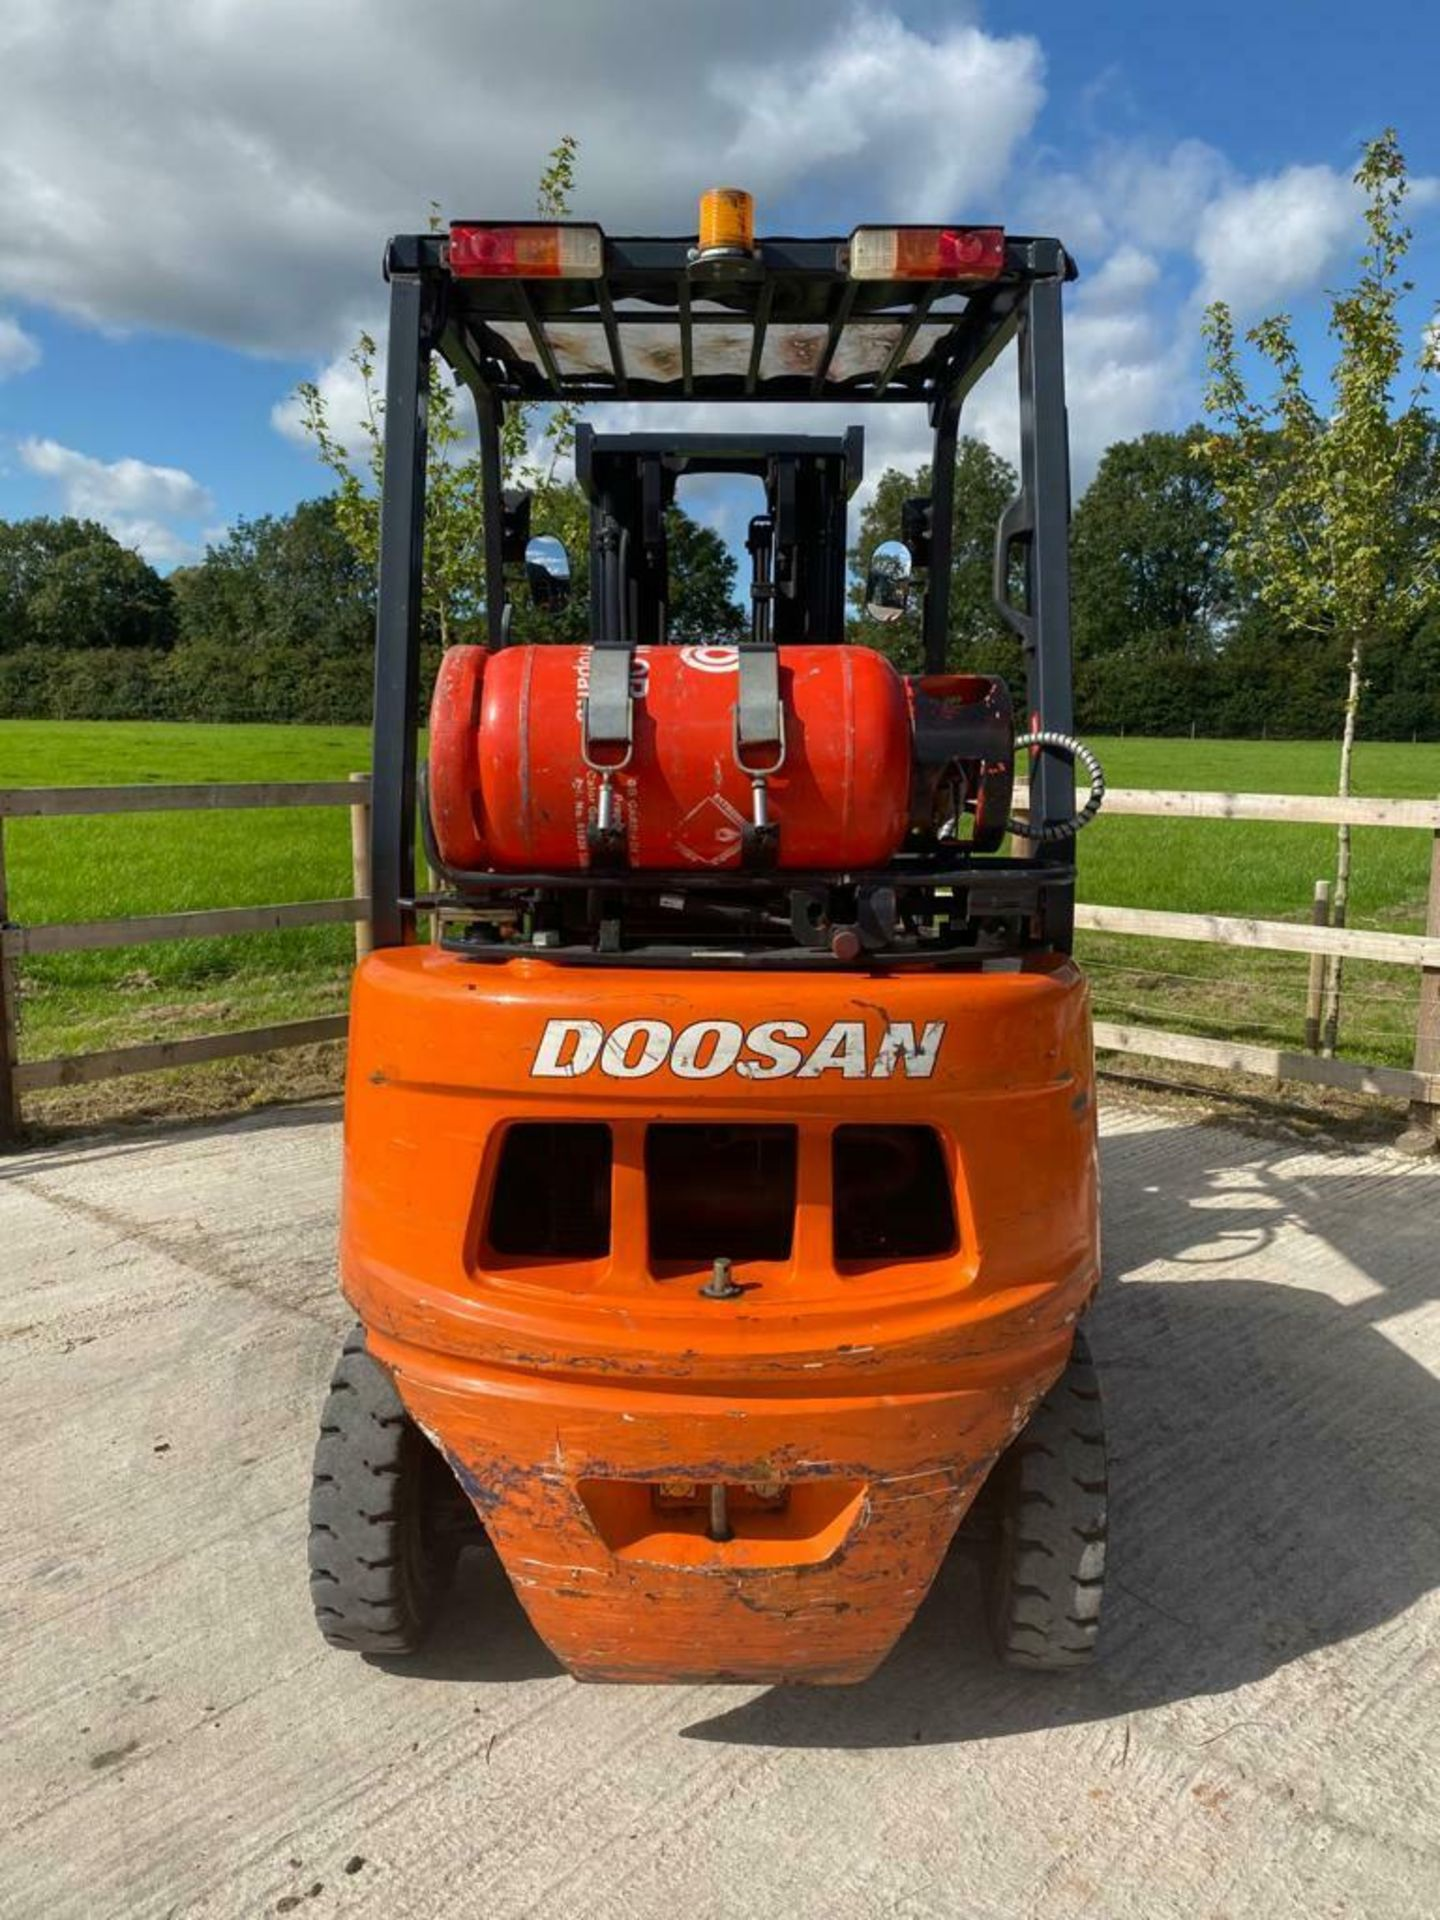 DOOSAN 2 TON GAS FORK LIFT, MODEL: G20G, YEAR 2016, TRIPLE MAST, SIDE SHIFT, CONTAINER SPEC, 4710MM - Image 5 of 5